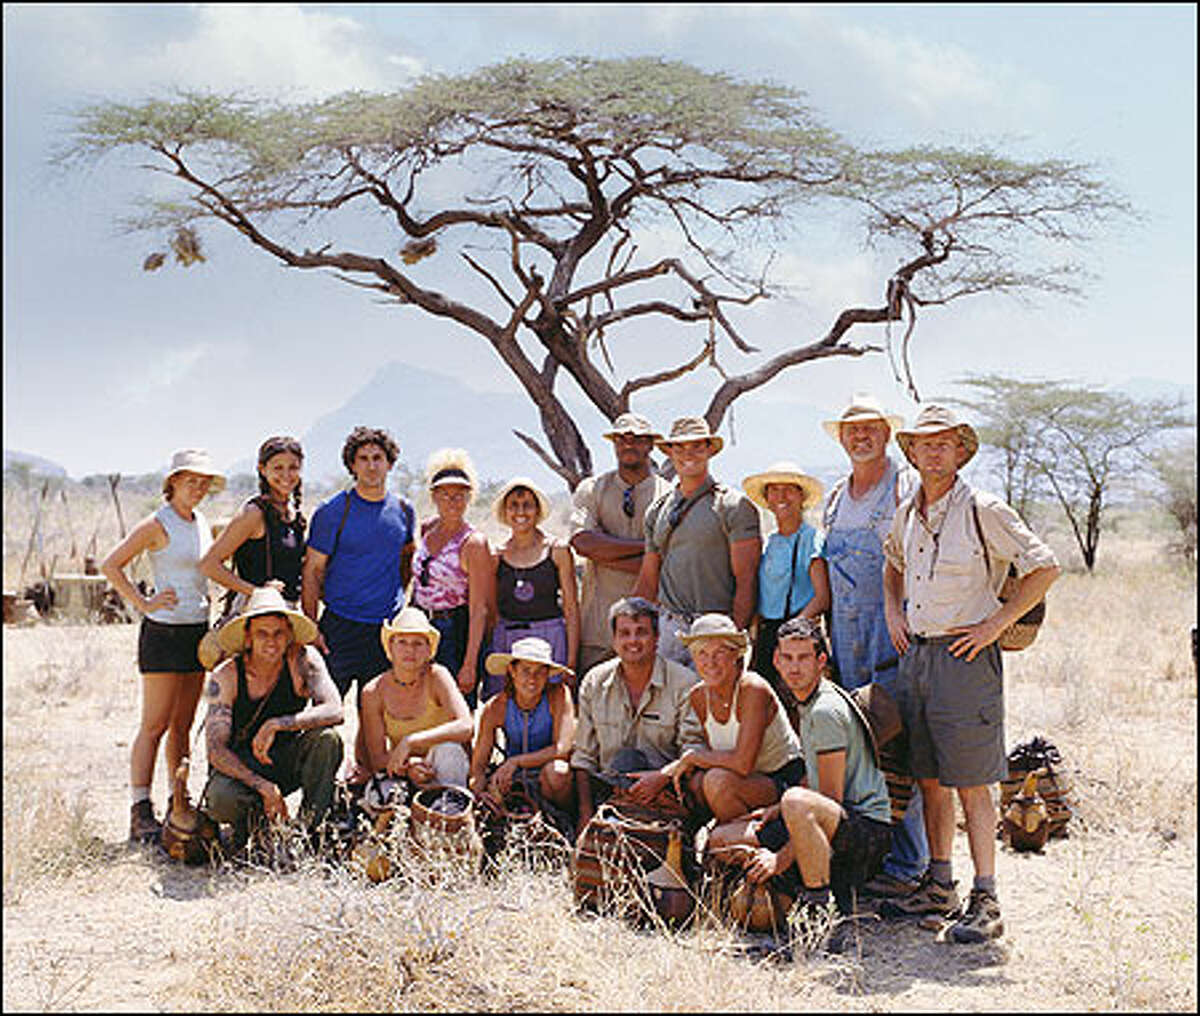 Survivor: Africa contestants, standing from left, Kelly Goldsmith, Jessie Camacho, Ethan Zohn, Diane Ogden, Linda Spender, Clarence Black, Silas Gaither, Teresa Cooper, Tom Buchanan, Frank Garrison, and, seated from left, Lex van den Berghe, Lindsey Richter, Kim Powers, Carl Bilancione, Kim Johnson and Brandon Quinton.